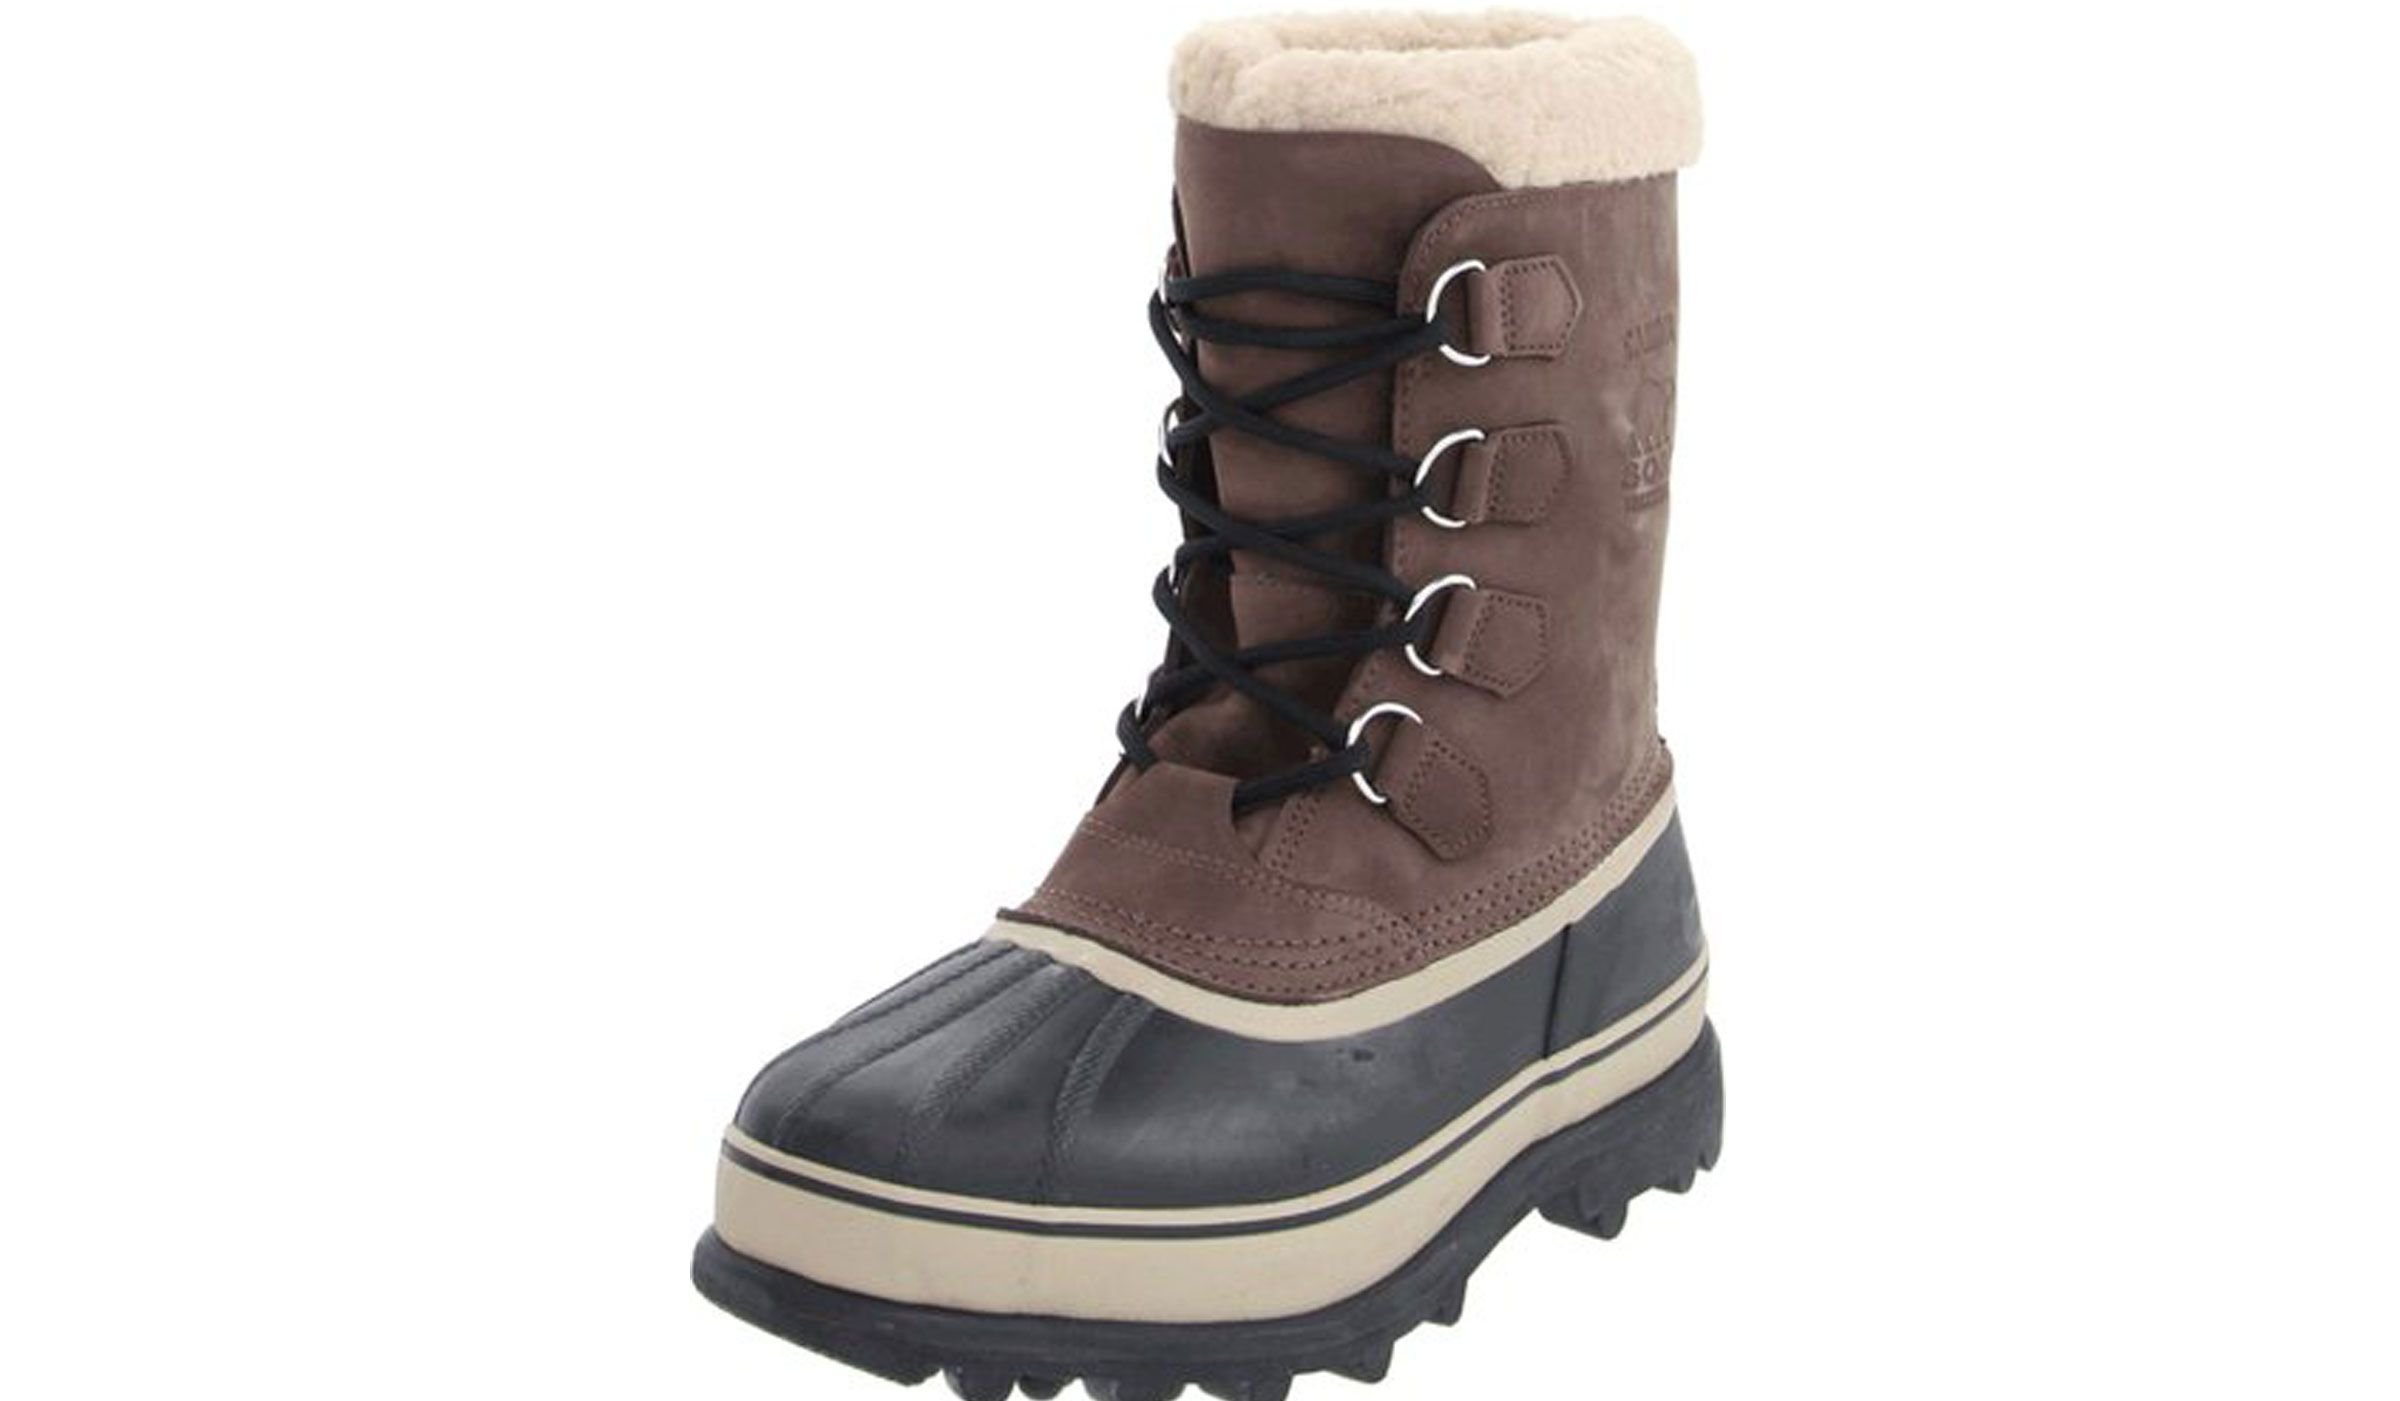 7120e71b150ec1 10 Best Winter Boots for Men That Can Handle Snow And Ice | Boots ...